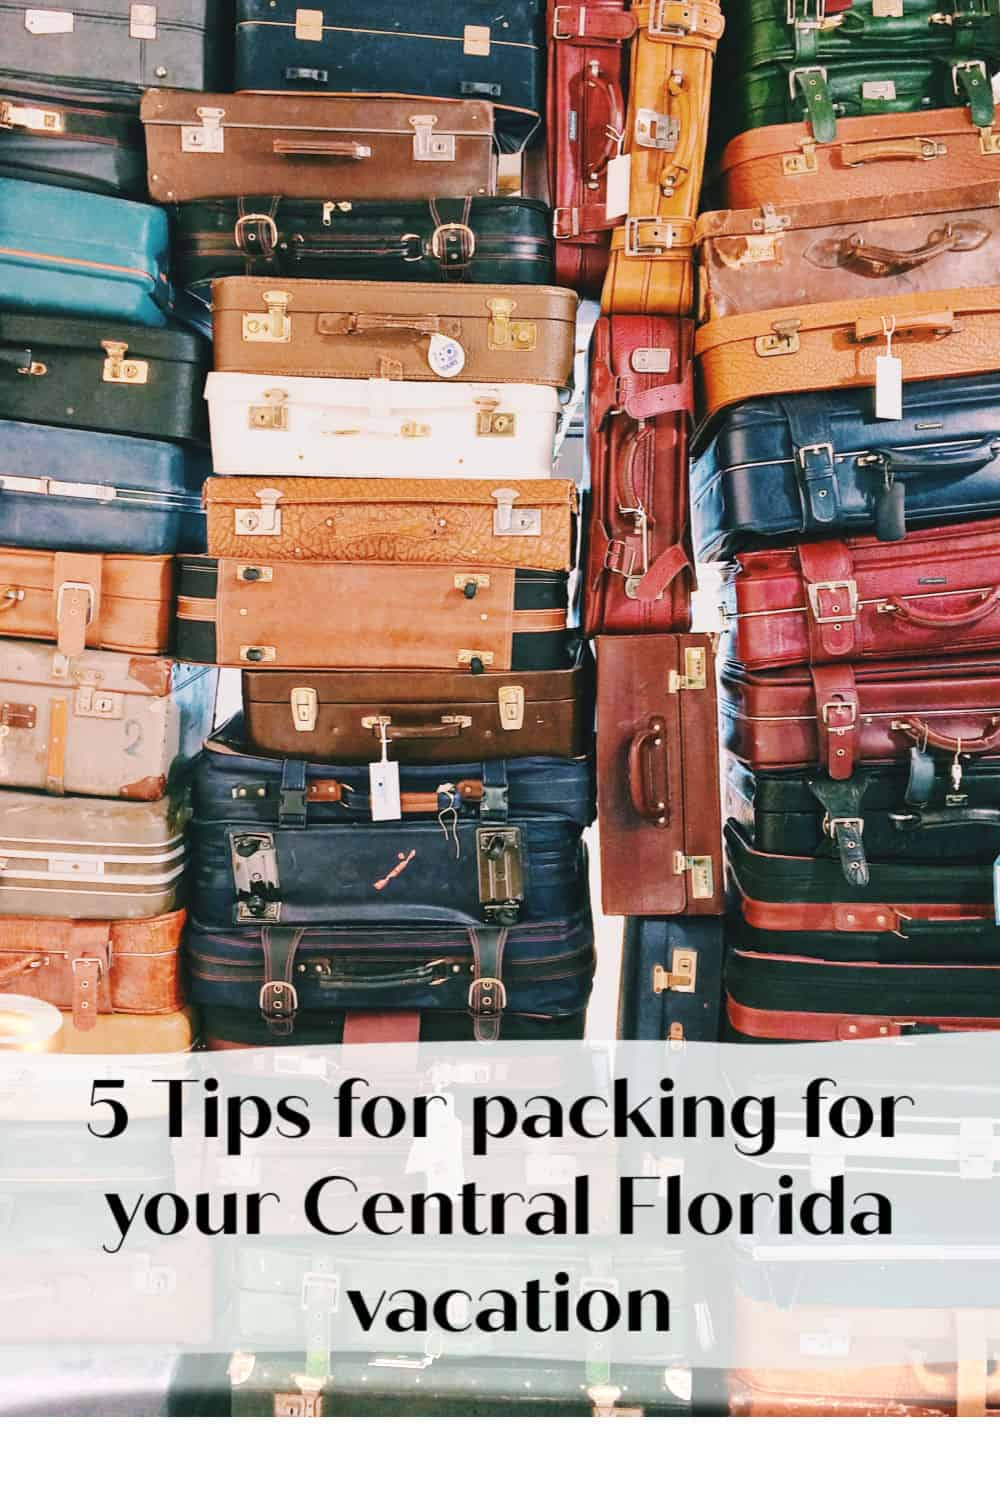 5 tips for packing for your Central Florida vacation from a Floridian. #Travel #Vacation #CentralFlorida